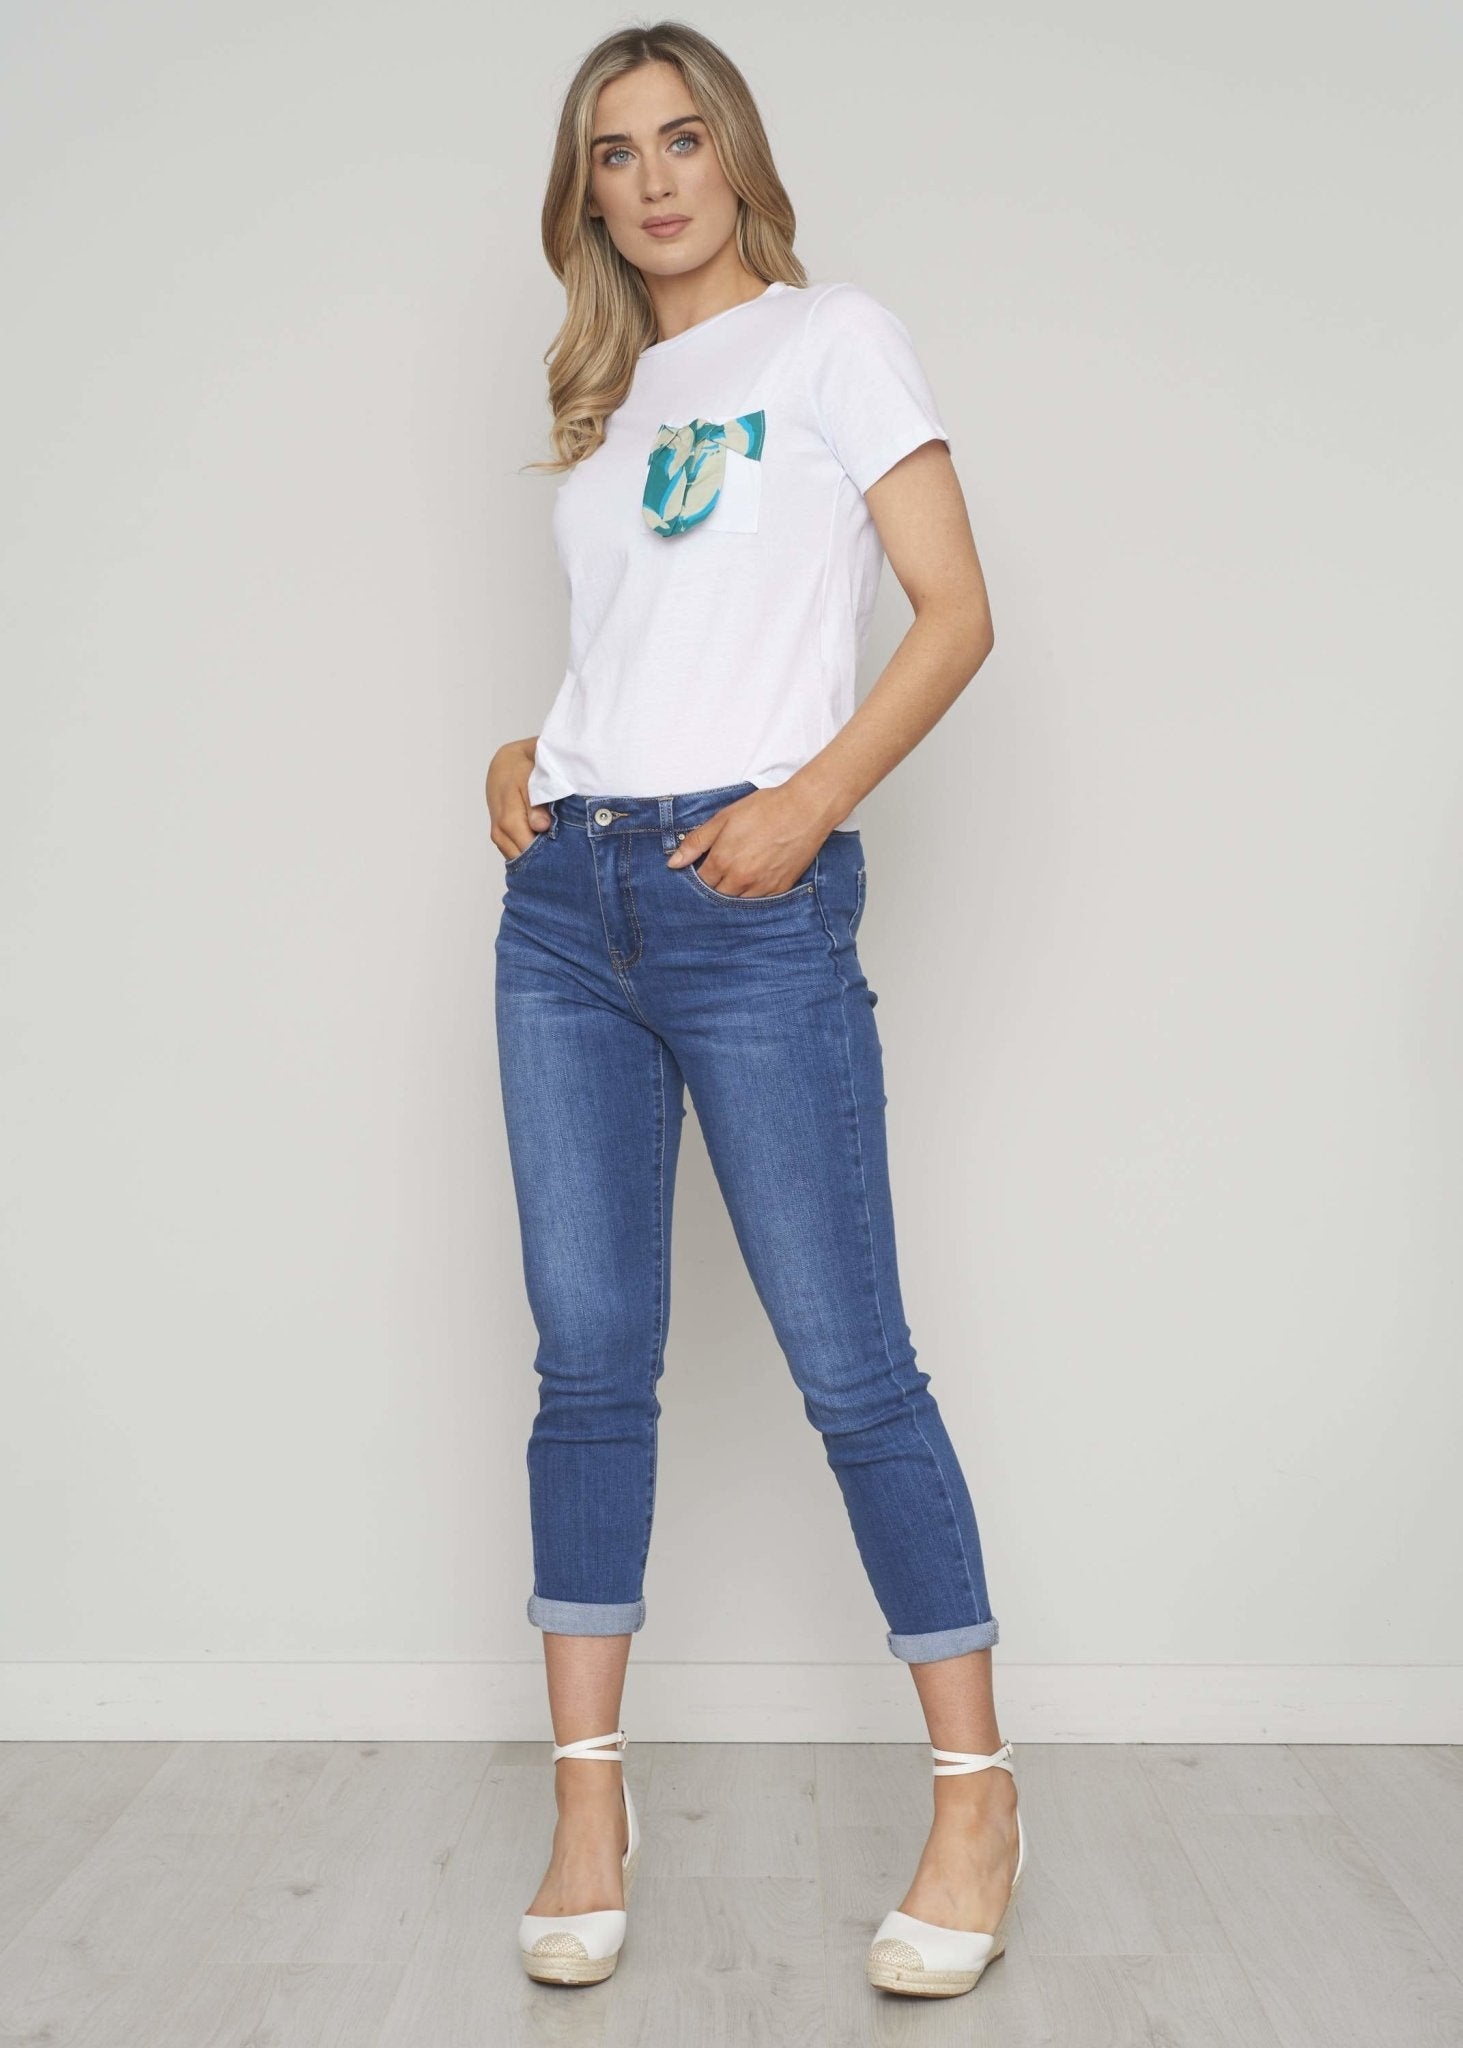 Heidi Pocket Detail T-Shirt In White - The Walk in Wardrobe